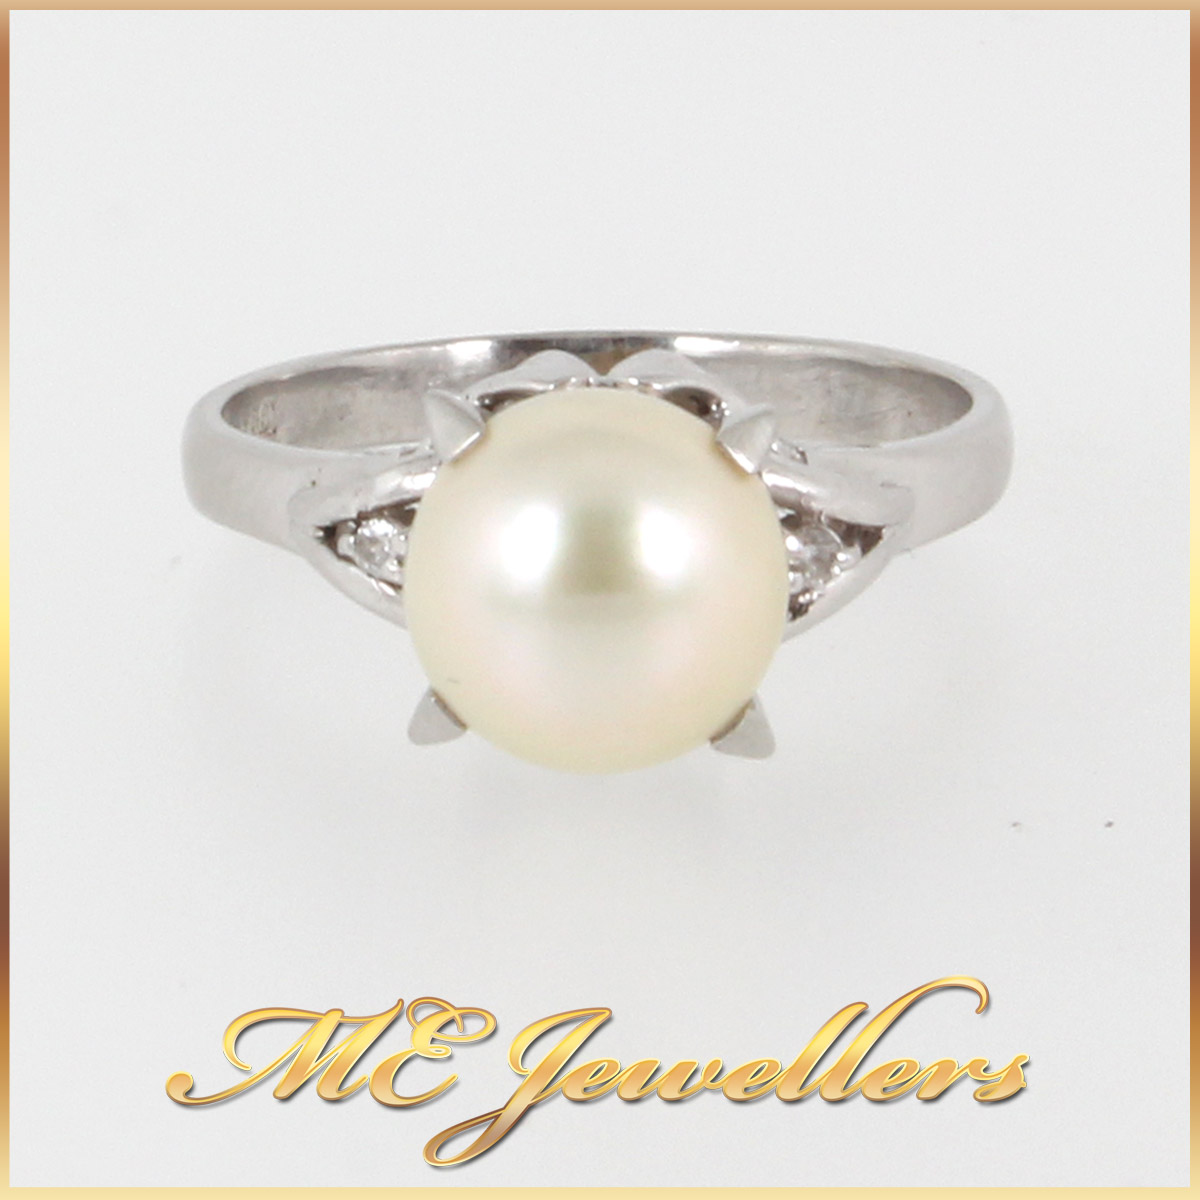 1377 Pearl Dress Ring In platimum main